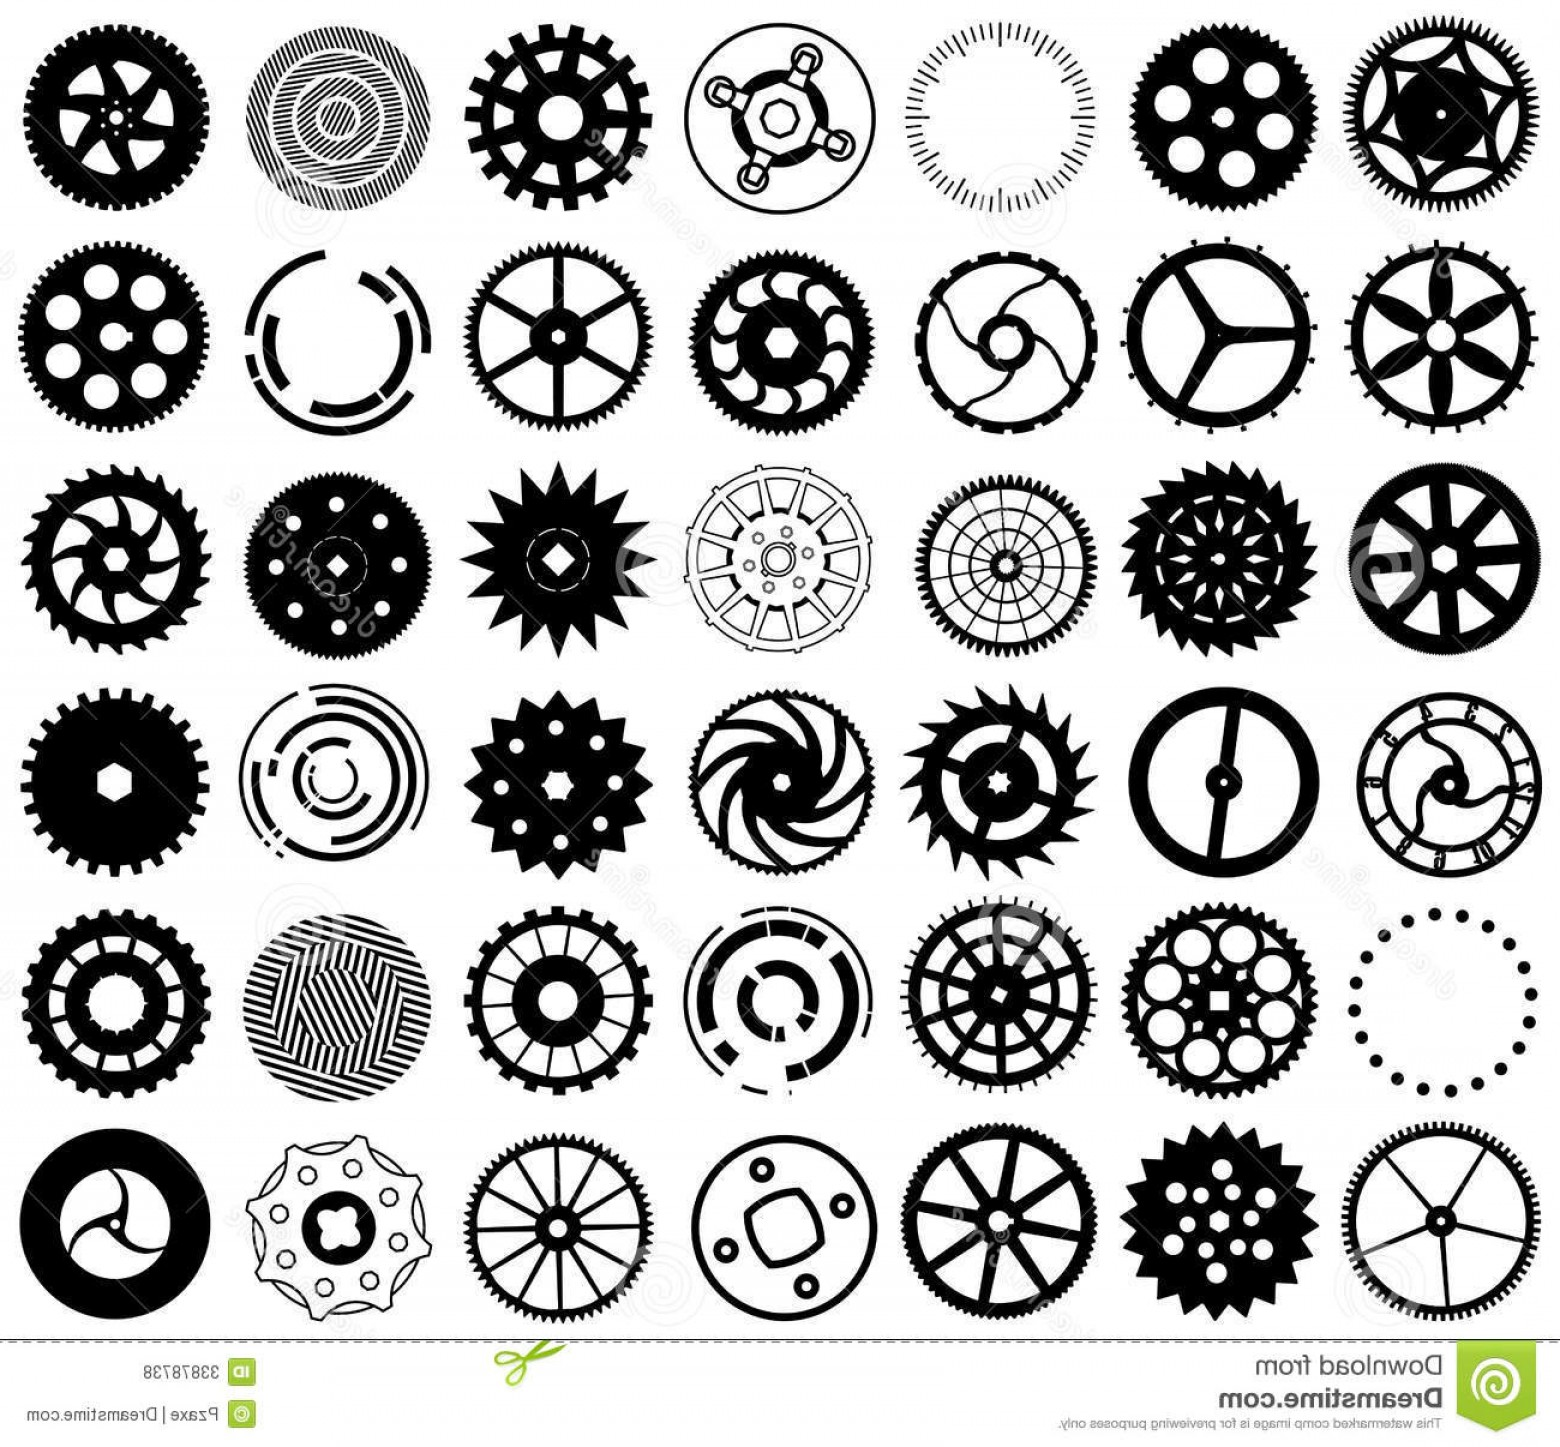 Vector Mechanical Clock Wheels: Royalty Free Stock Photos Vector Set Silhouettes Gears Other Round Black Objects Image